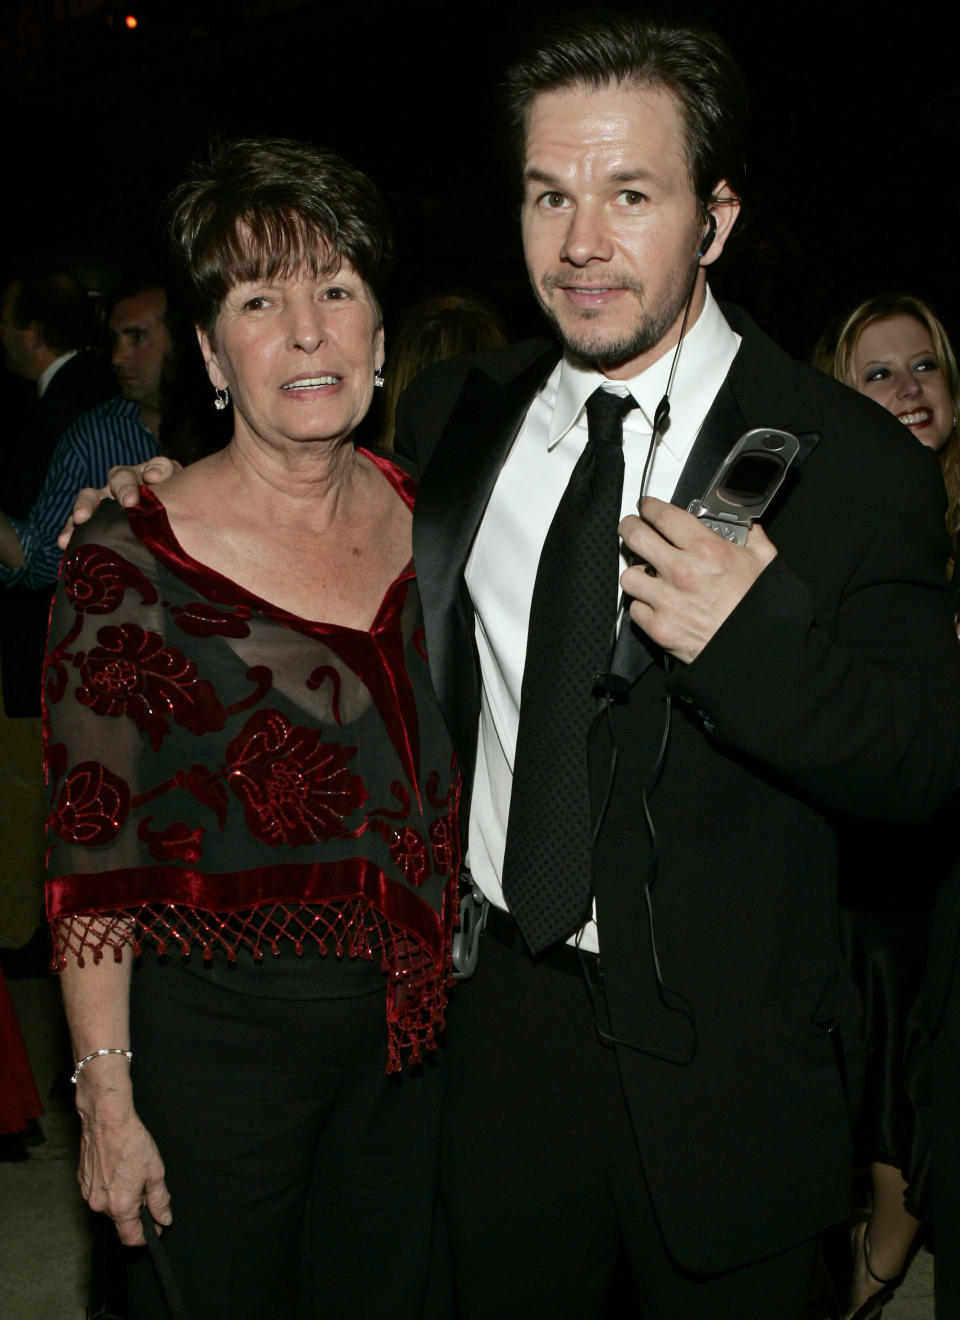 "FILE - In this Sunday, Jan. 16, 2005, file photo, Mark Wahlberg, executive producer of the HBO series ""Entourage,"" and his mother Alma pose at the HBO party after the 62nd Annual Golden Globe Awards, in Beverly Hills, Calif. Alma Wahlberg, the mother of entertainers Mark and Donnie Wahlberg and a regular on their reality series ""Wahlburgers"", has died, her sons said on social media Sunday, April 18, 2021. She was 78. ""My angel. Rest in peace,"" Mark Wahlberg tweeted. (AP Photo/Lisa Rose, File)"